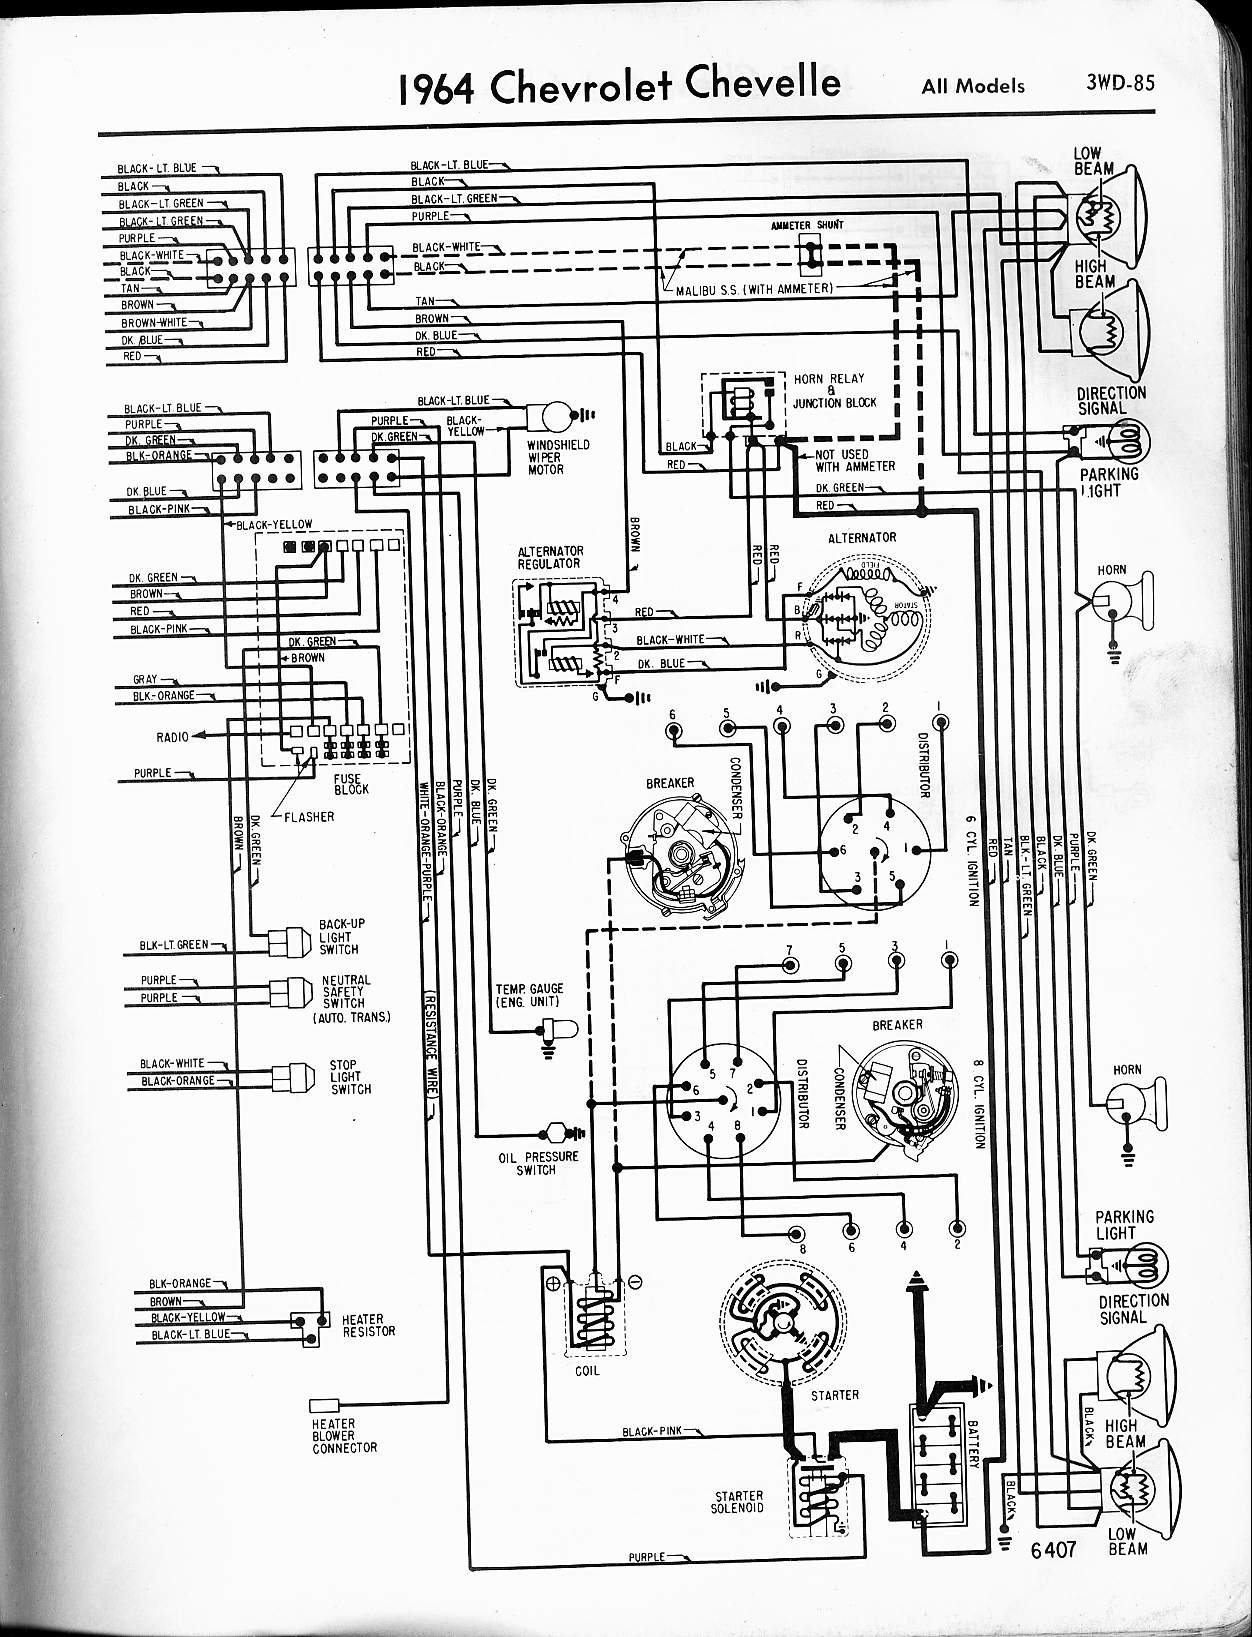 MWireChev64_3WD 085 1969 chevelle wiring diagram pdf 1969 thunderbird dash wiring Turn Signal Relay Wiring Diagram at gsmx.co